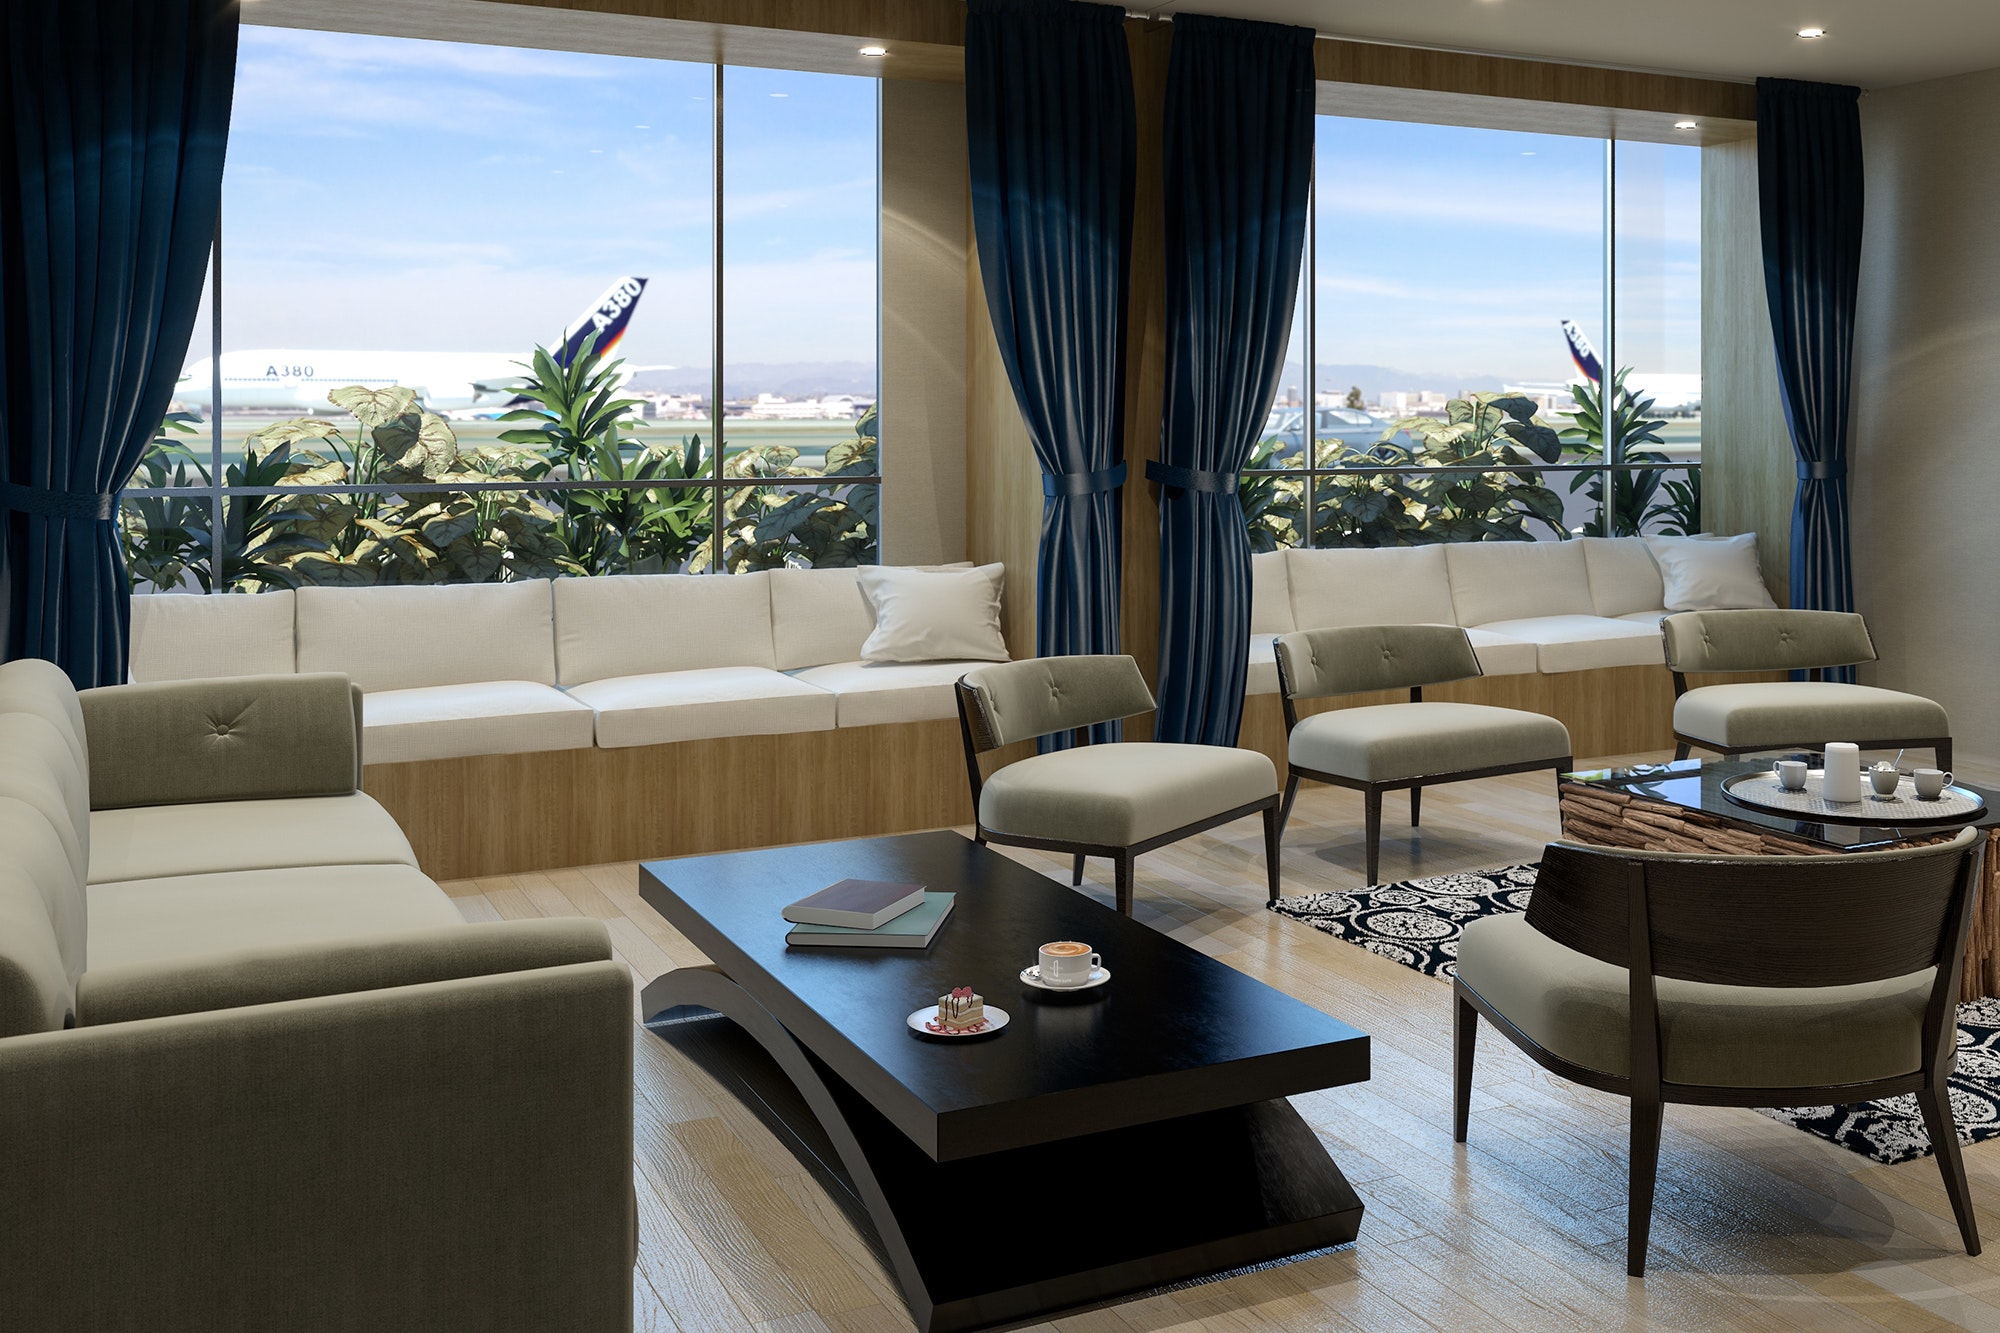 Each of 13 suites features runway views, private bathrooms, and homelike amenities.